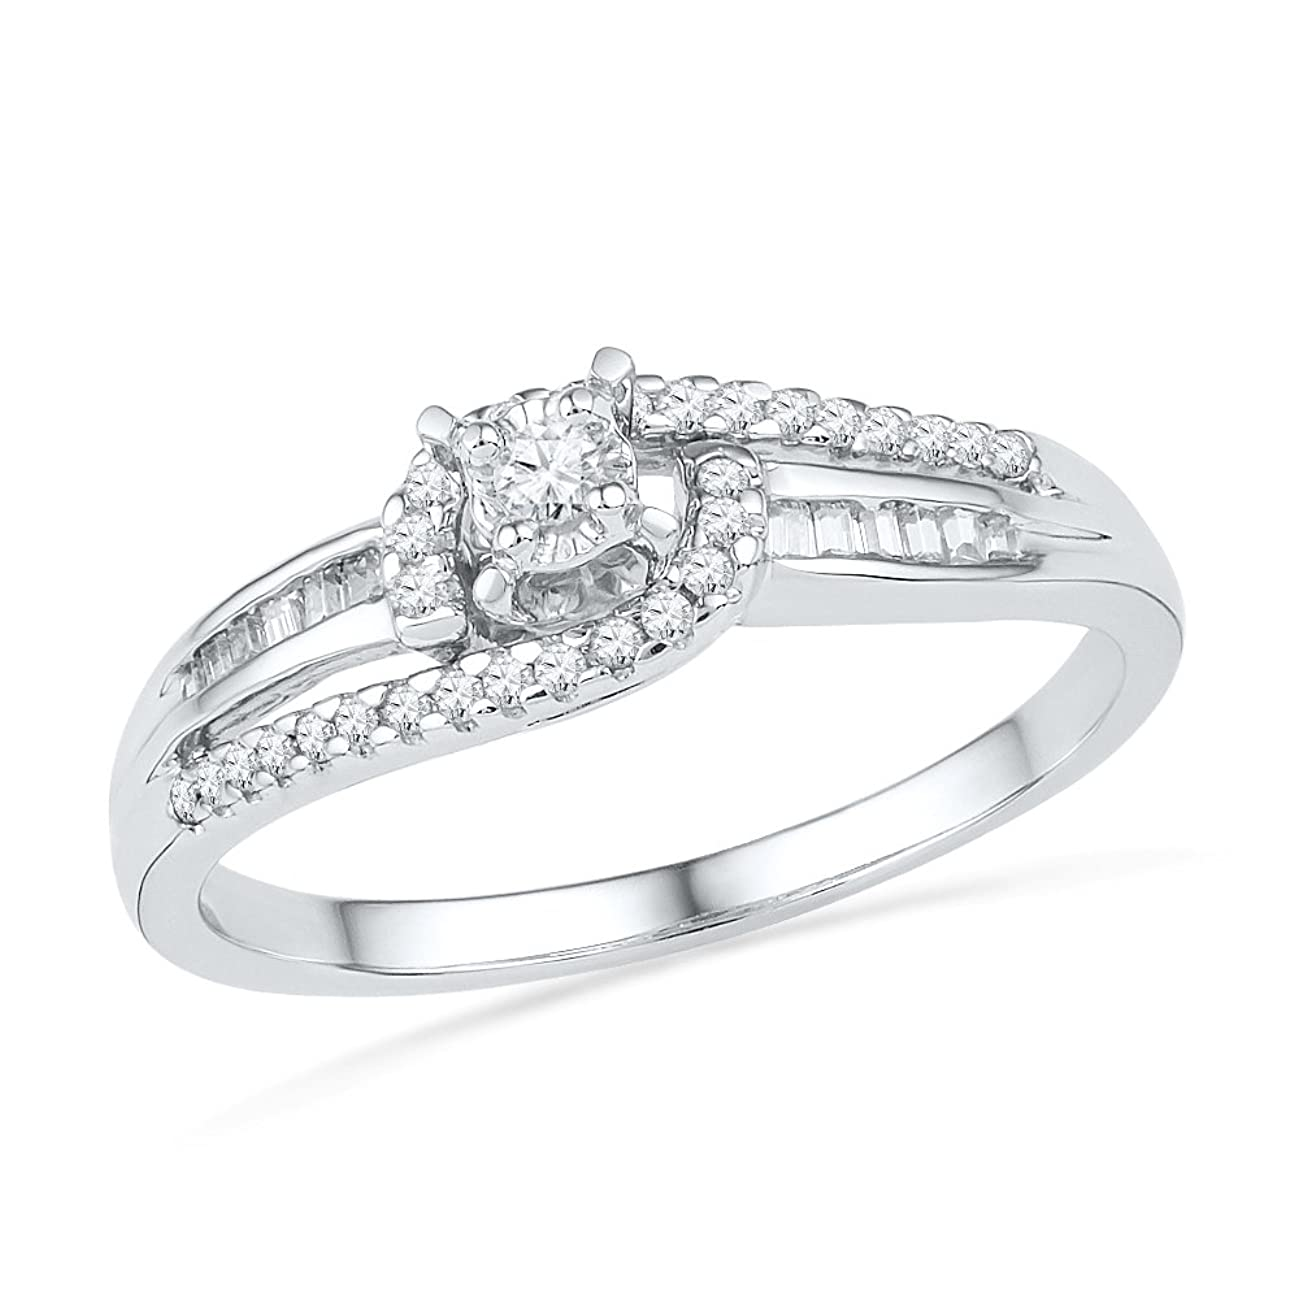 D-GOLD Sterling Silver Baguette and Round Diamond Promise Ring (1/5 CTTW)